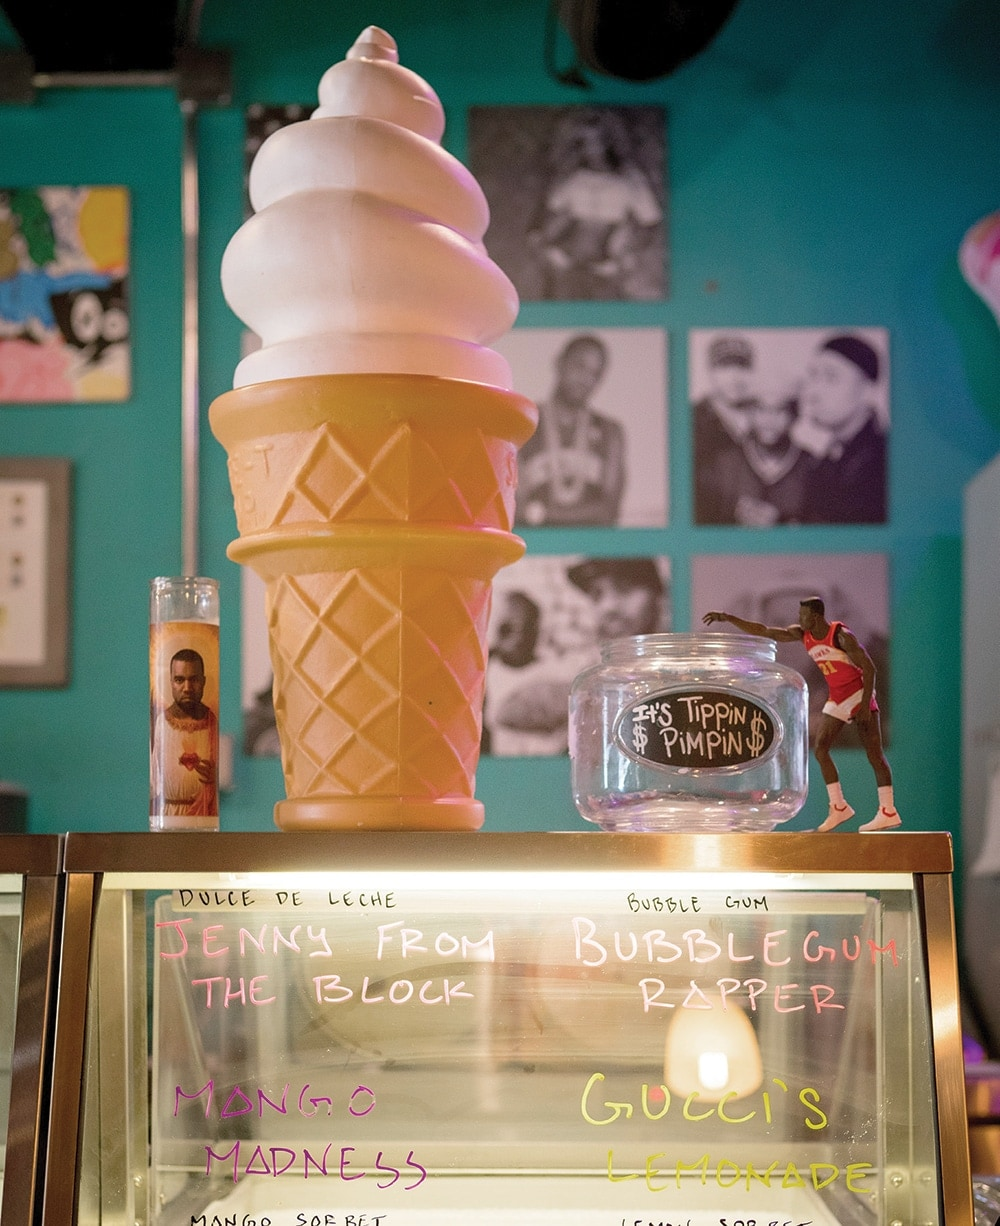 Ice-Cream-Shop-miami-1.jpg